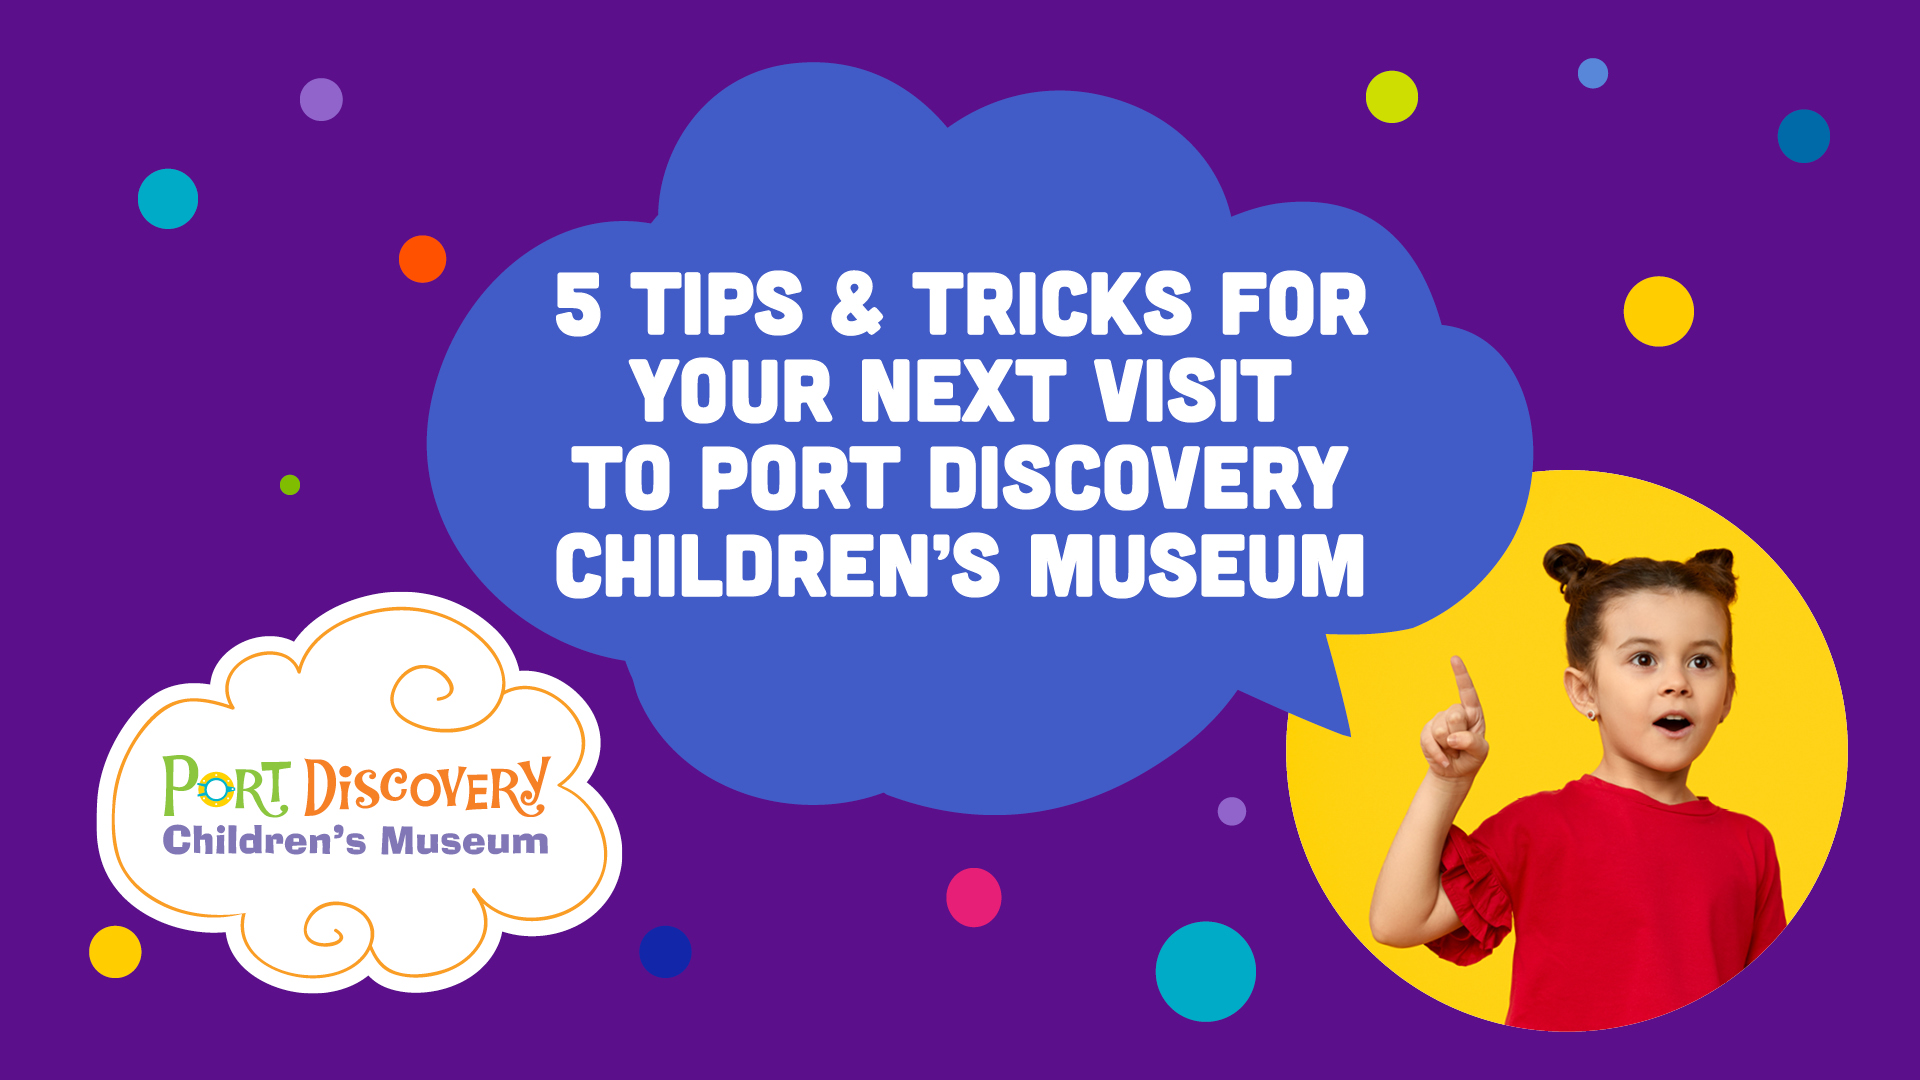 5 Tips and Tricks for your next visit to Port Discovery Children's Museum